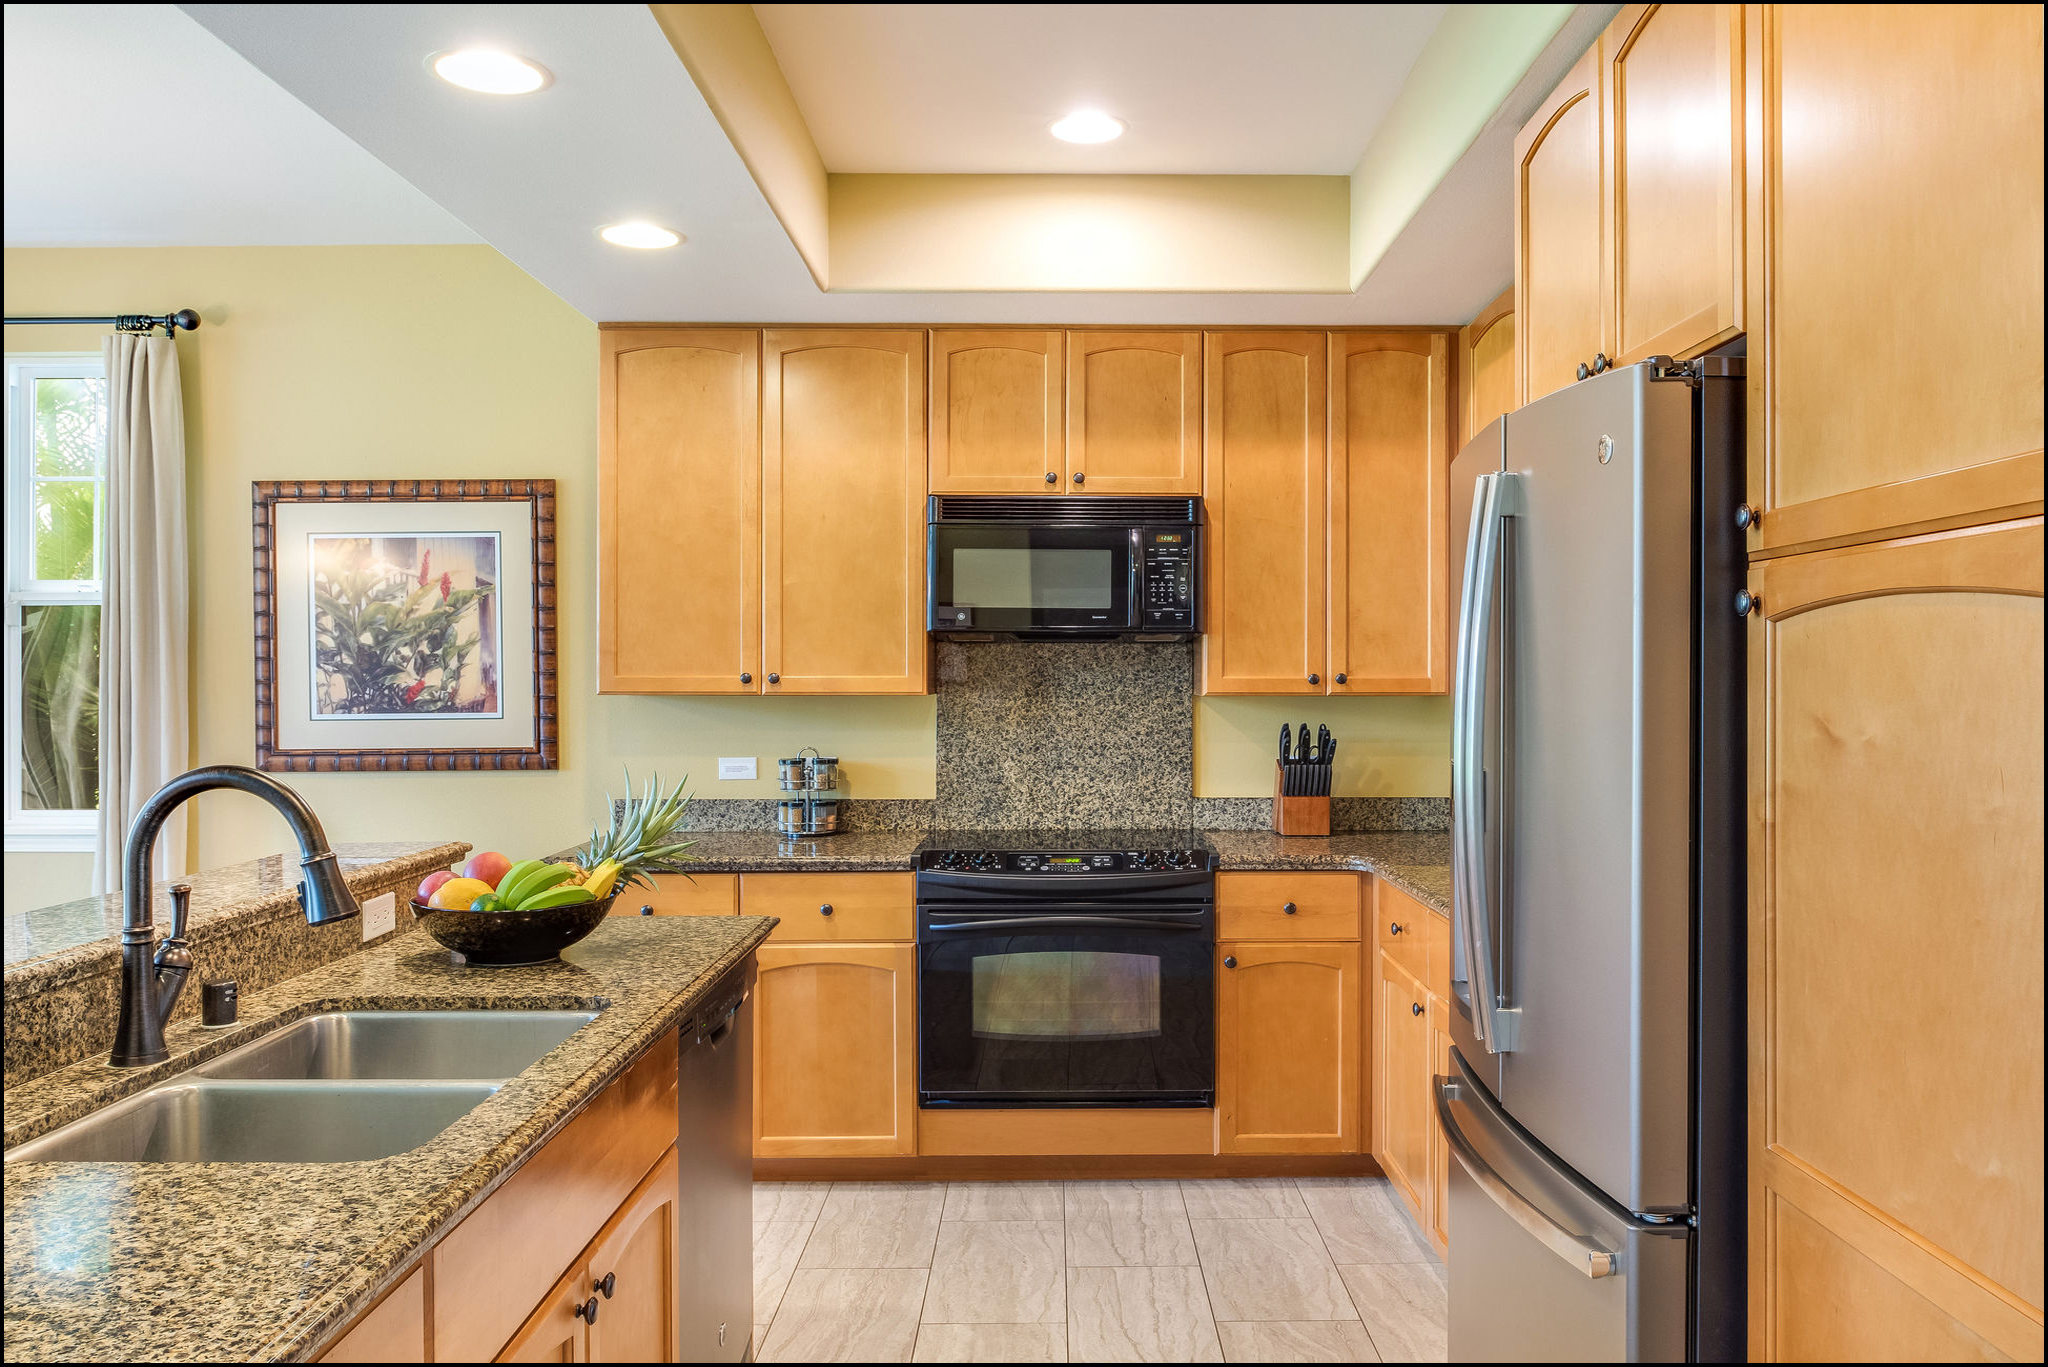 Kitchen with center island with sink, side-by-side fridge, electric cooktop stove, granite counters and maple cabinets